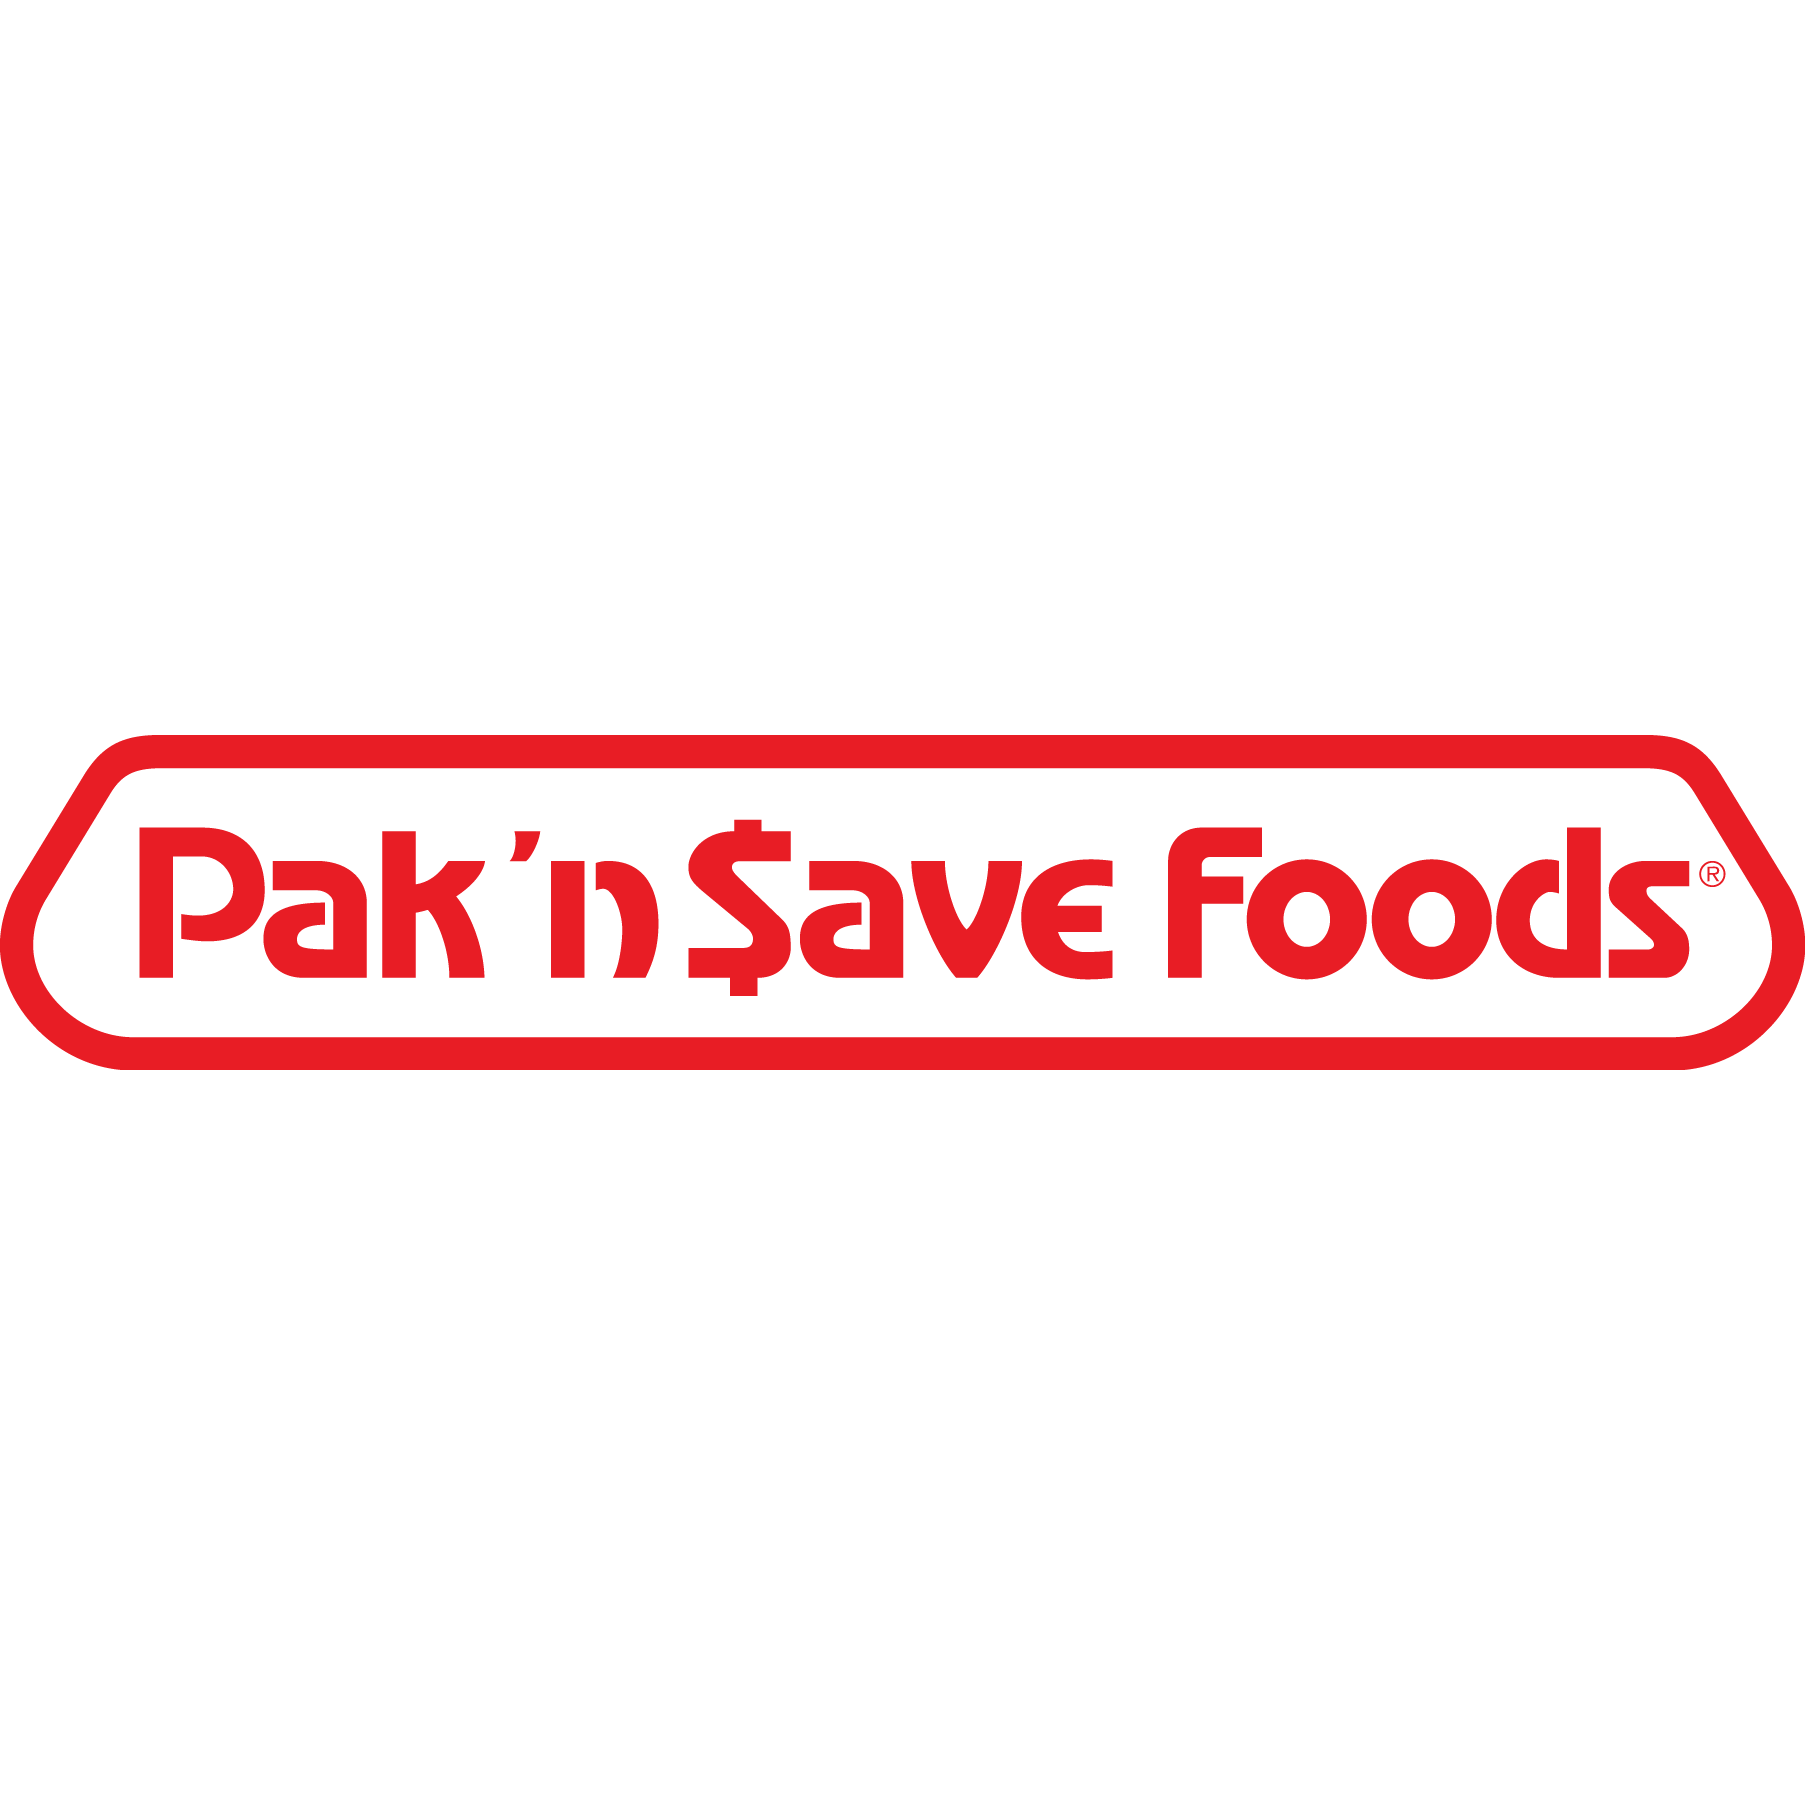 Pak N Save Pharmacy - Emeryville, CA 94608 - (510)768-1034 | ShowMeLocal.com